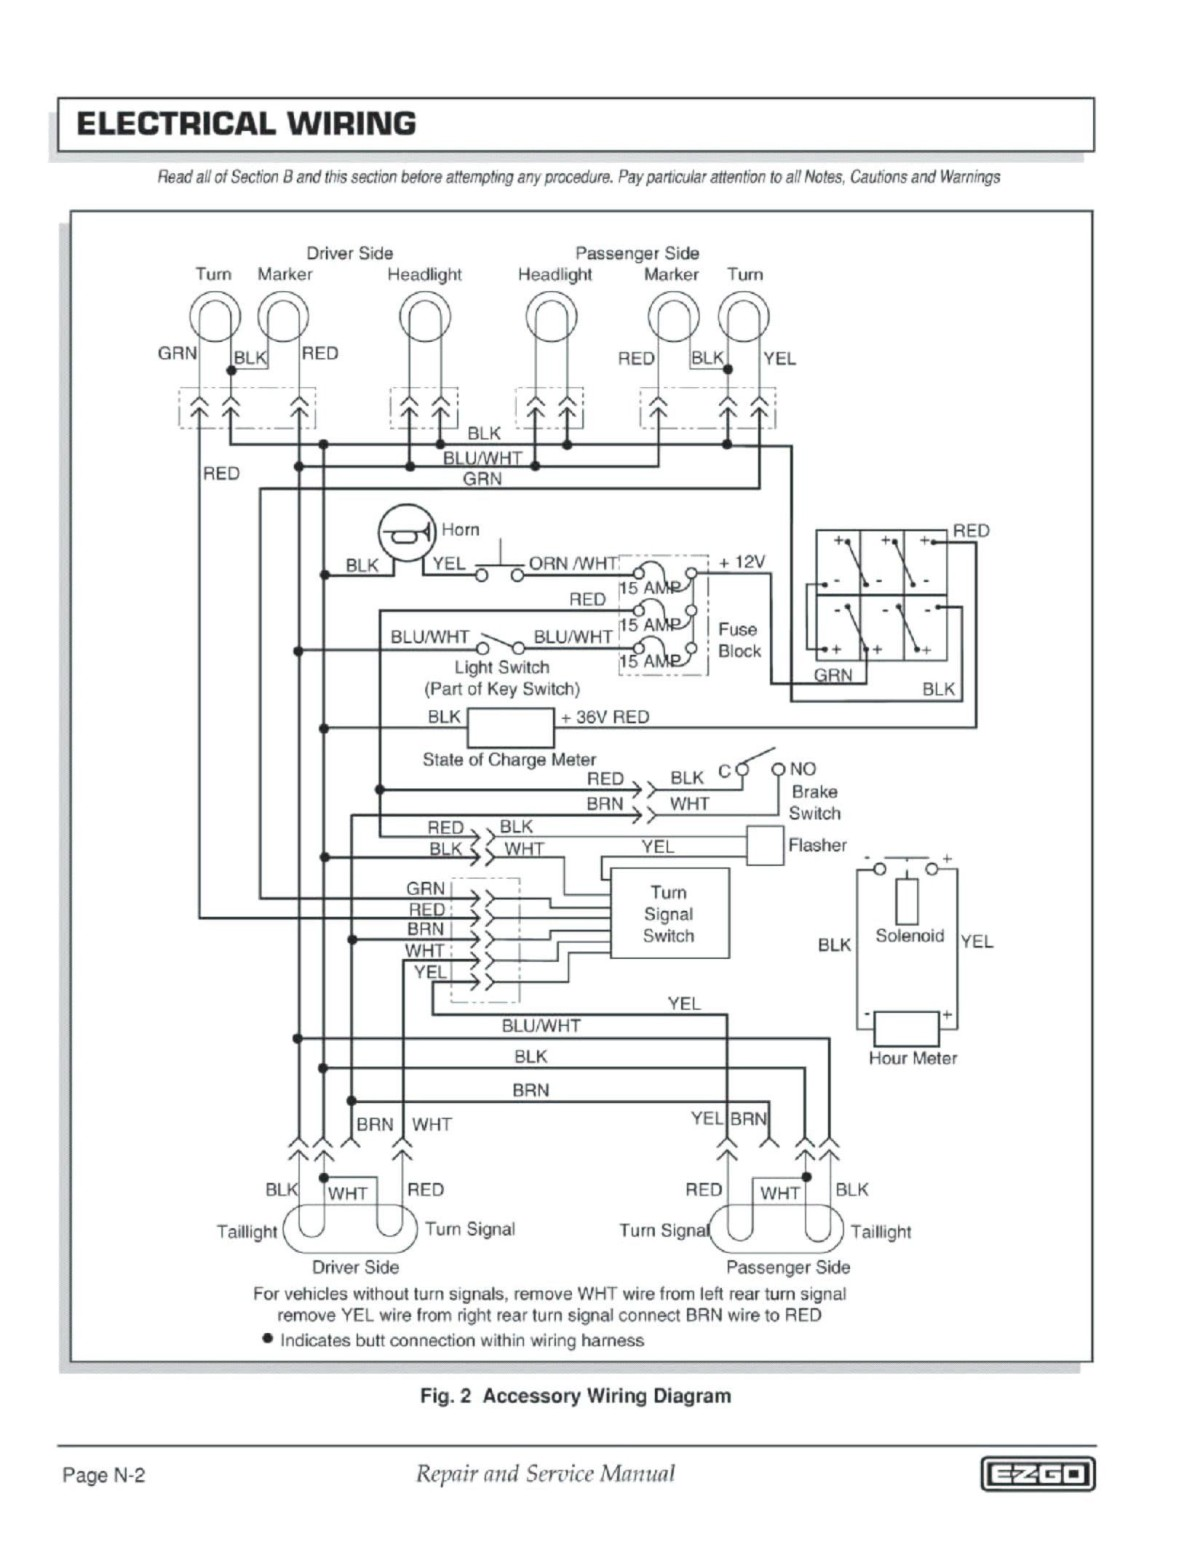 Wiring Diagram 1986 Ford F150